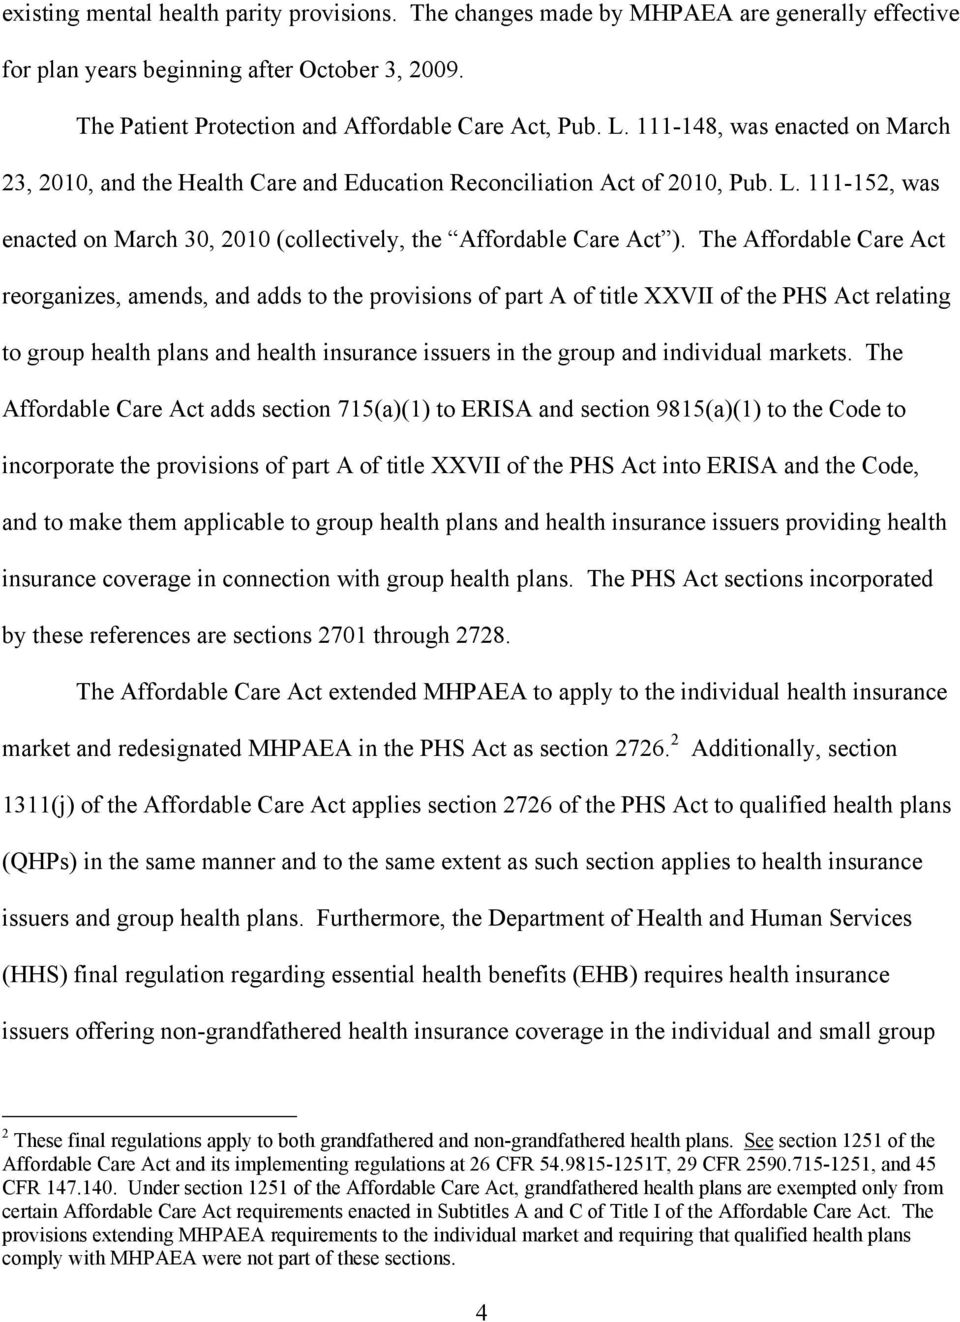 The Affordable Care Act reorganizes, amends, and adds to the provisions of part A of title XXVII of the PHS Act relating to group health plans and health insurance issuers in the group and individual